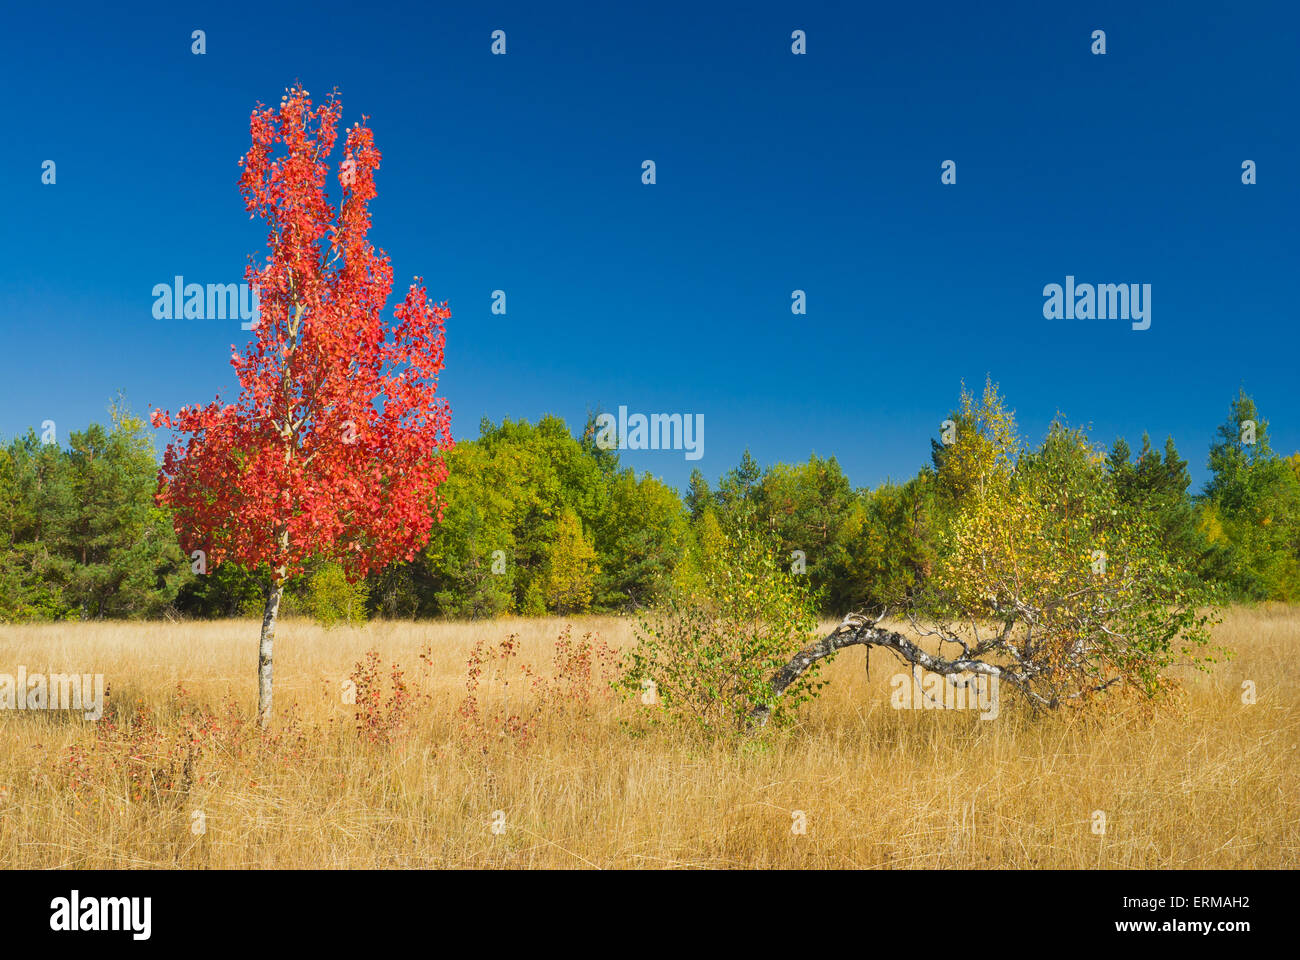 Birch family in the autumnal field - Stock Image